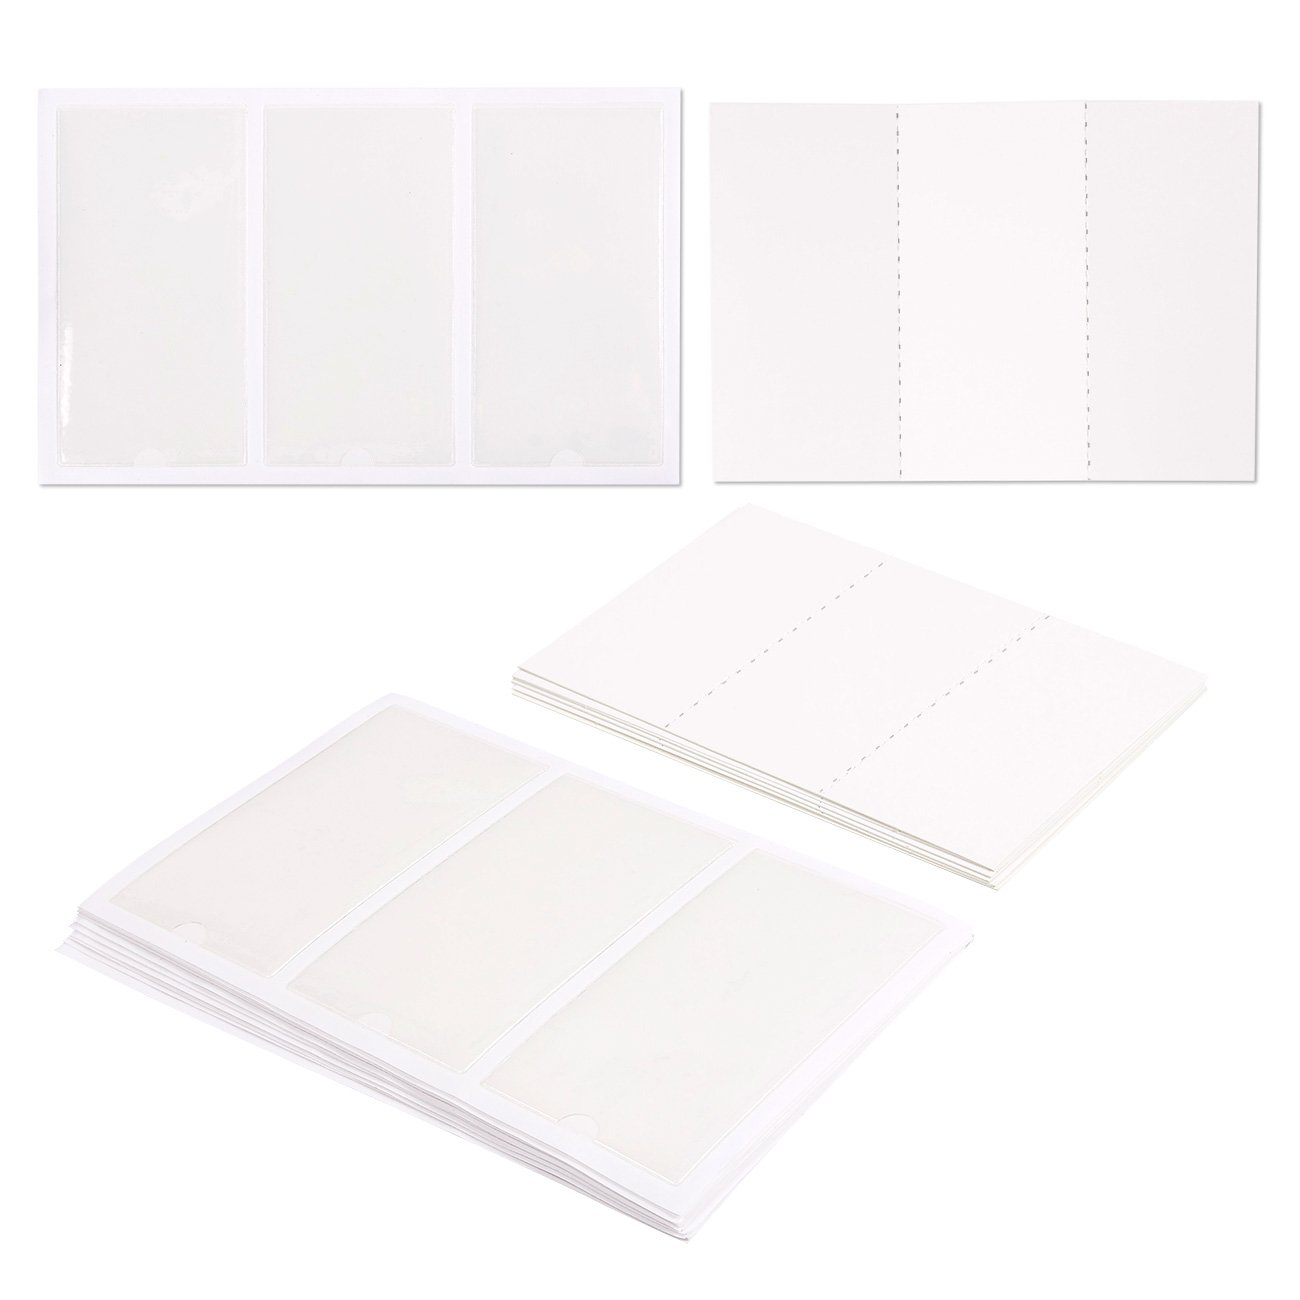 Juvale 30-Piece Self-Adhesive Label Holder Pockets with 30-Piece Blank Insert Cards - Ideal for Organizing and Identifying Binders and File Folders - Crystal Clear Plastic, 2.1 x 4 inches